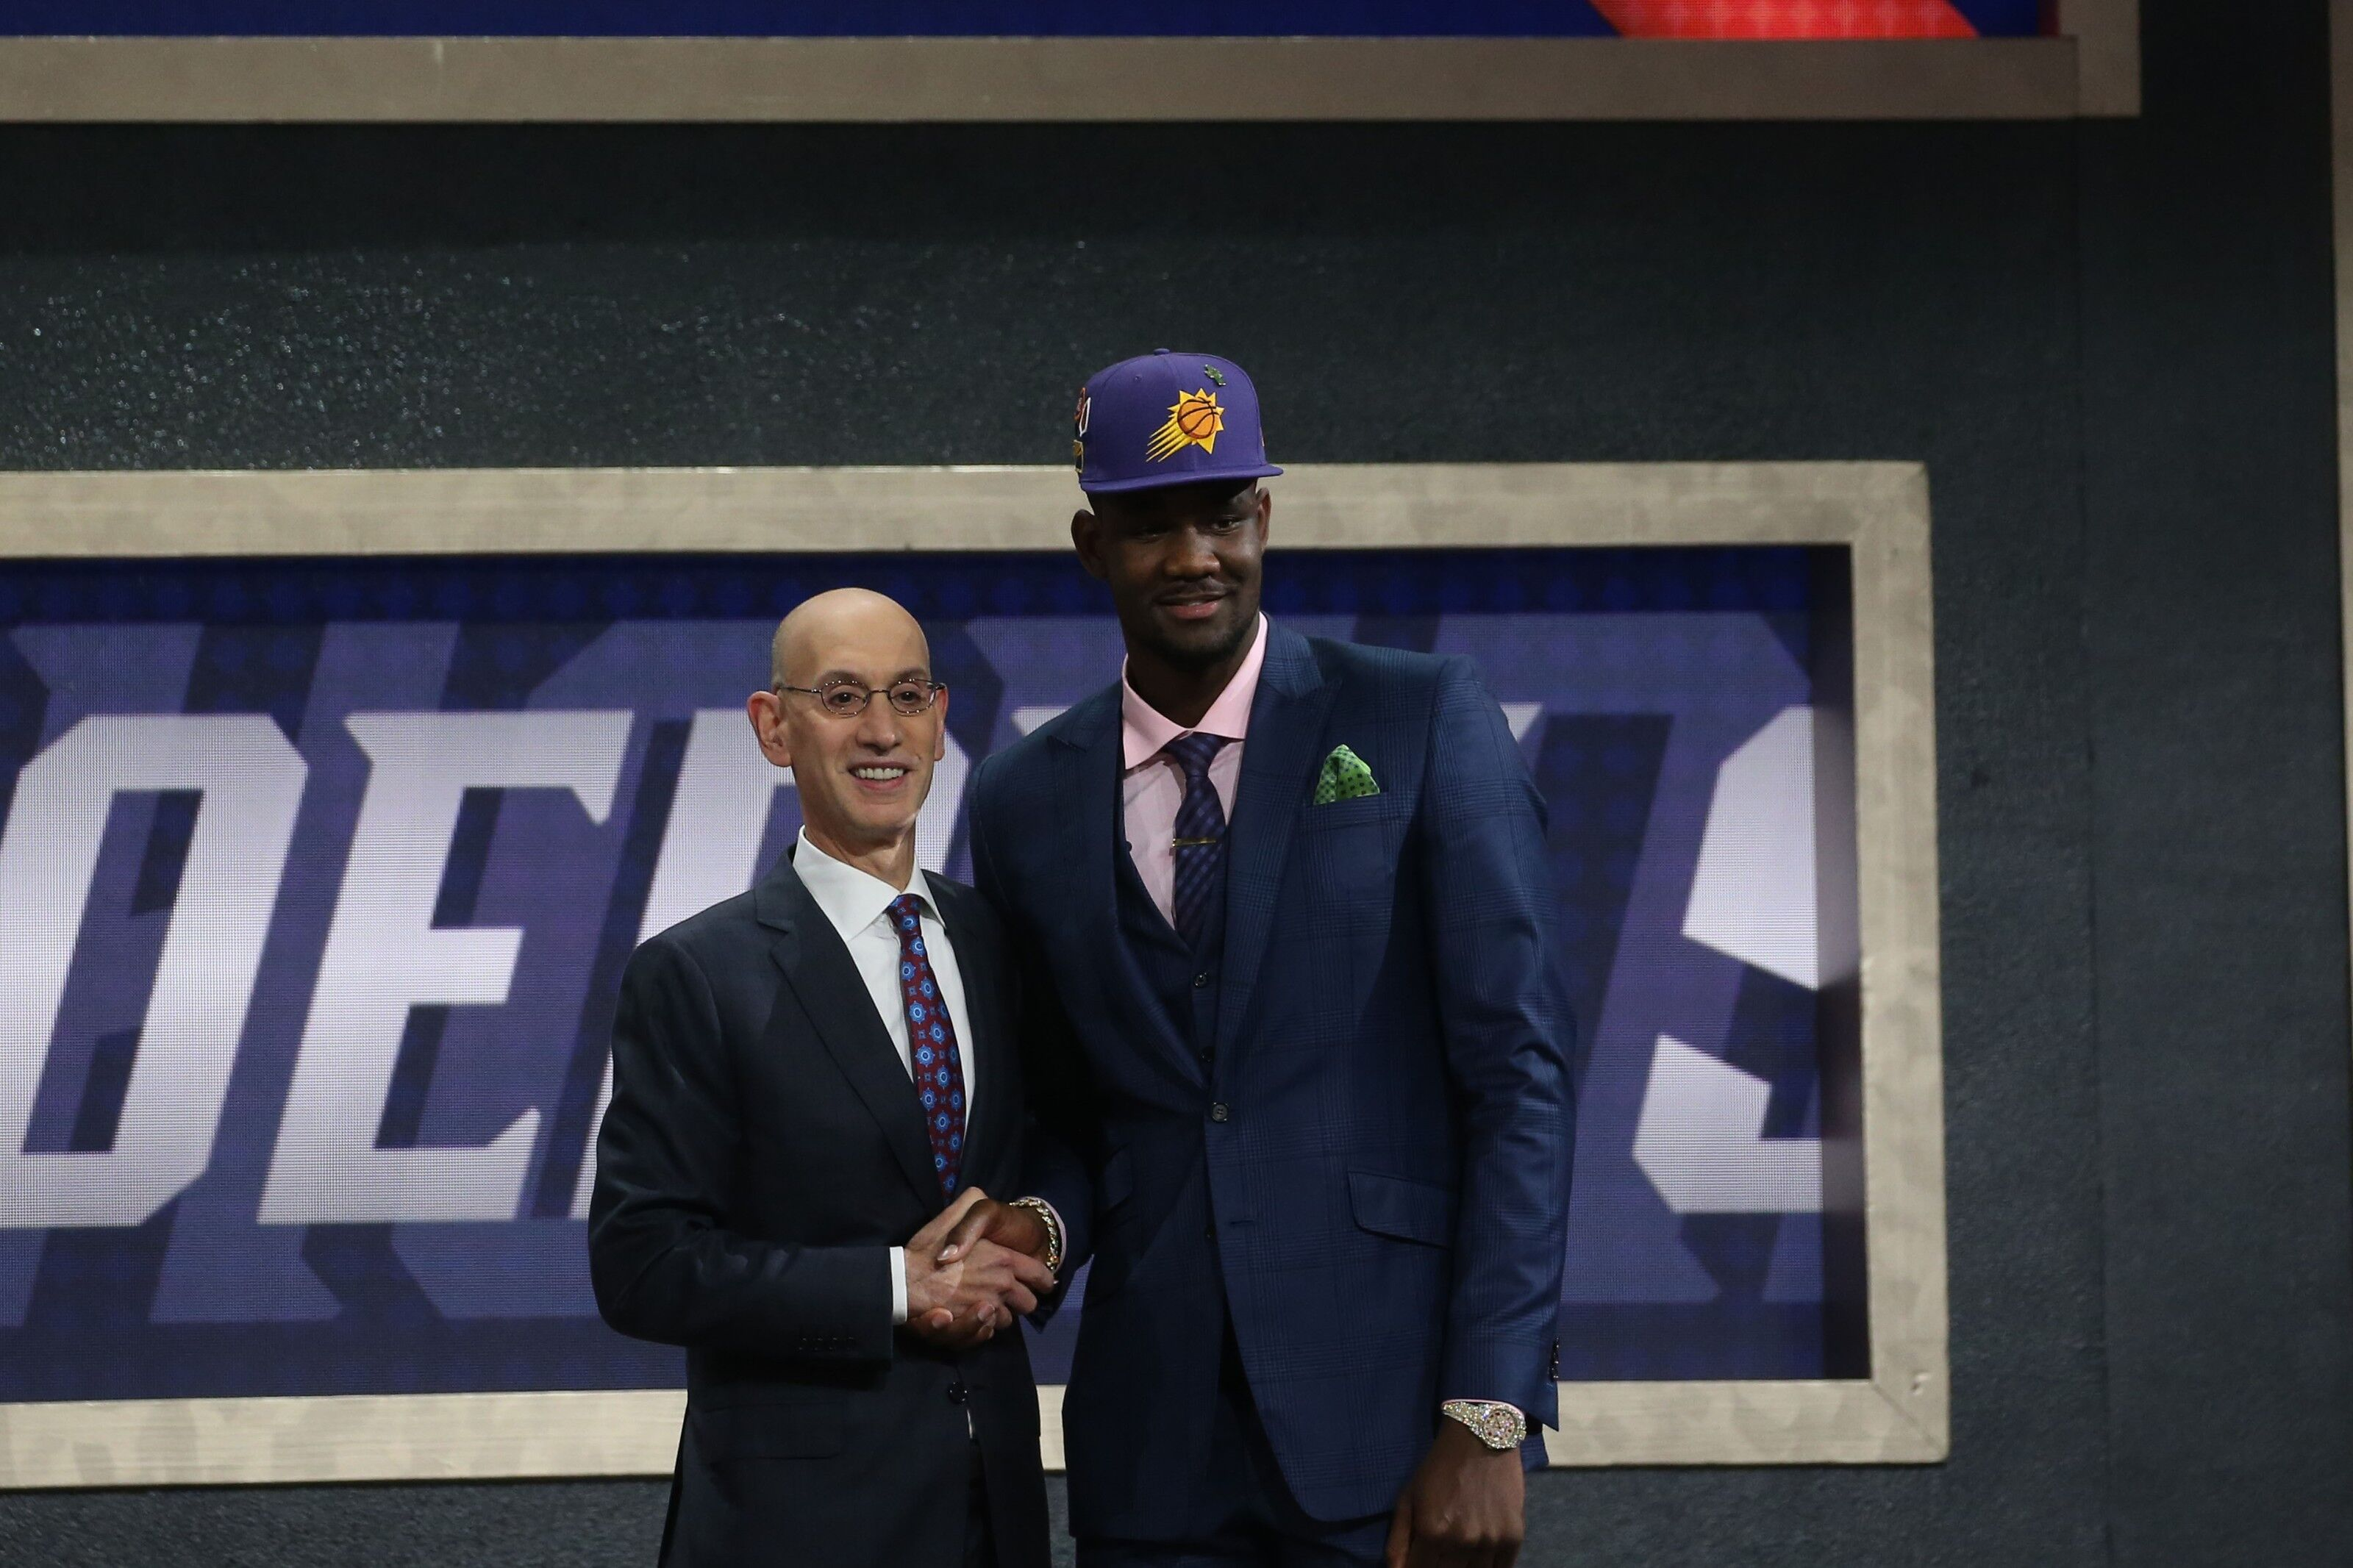 New York Knicks: NBA Draft Lottery history of teams with highest odds since 2000